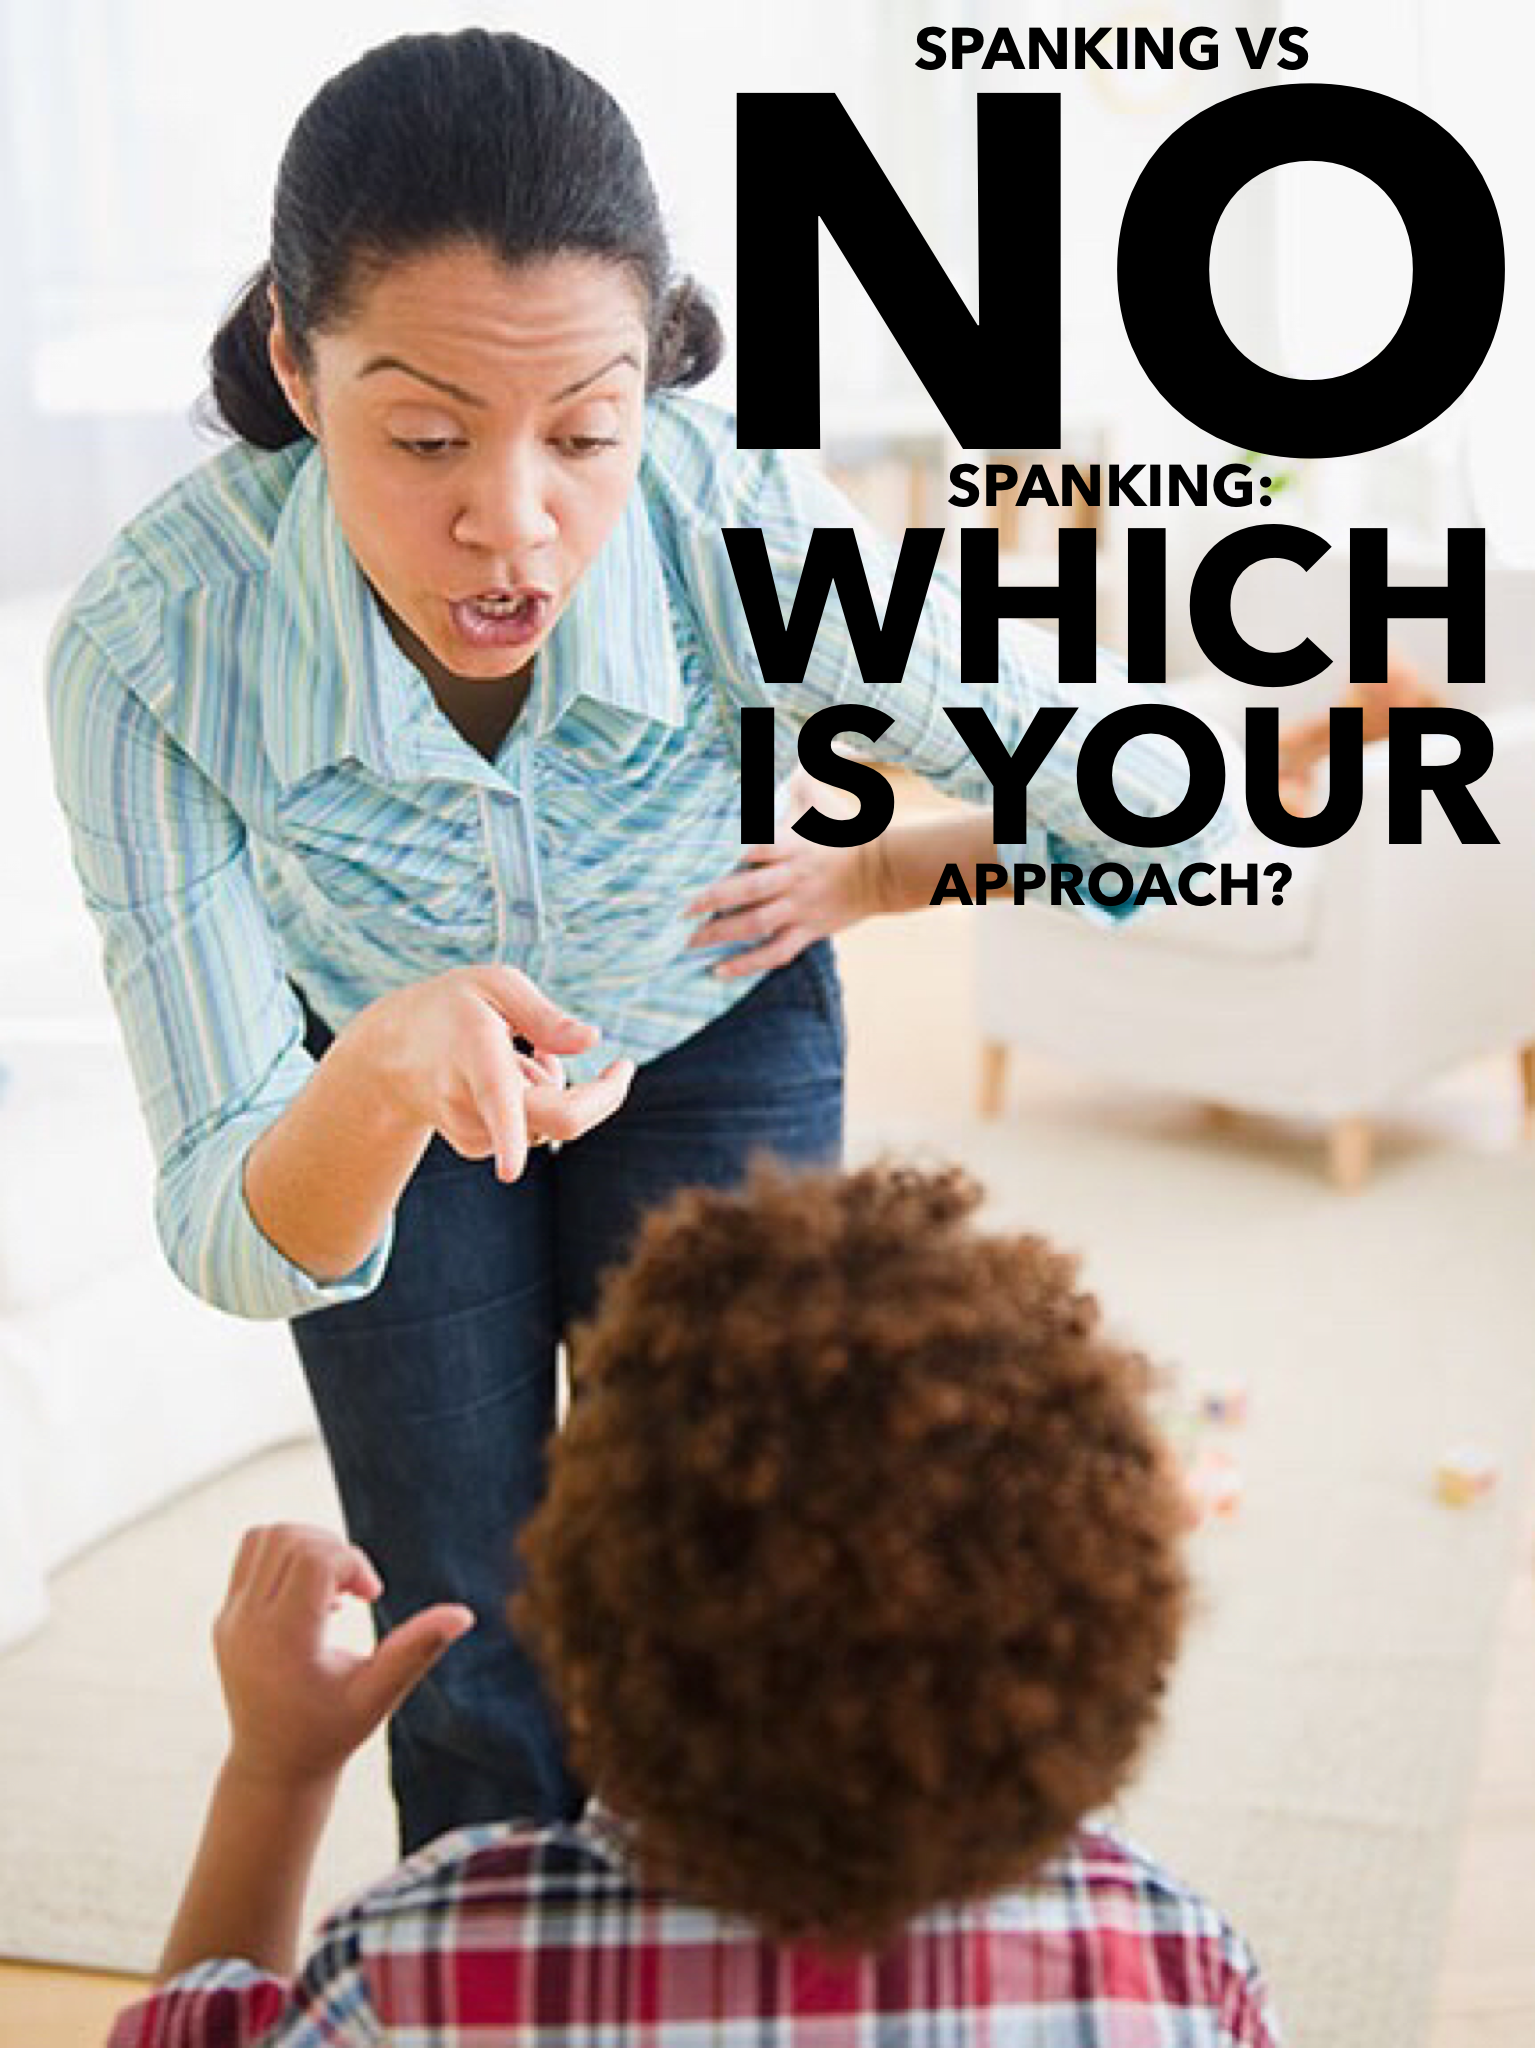 Spanking vs. No Spanking: Which one is your approach?